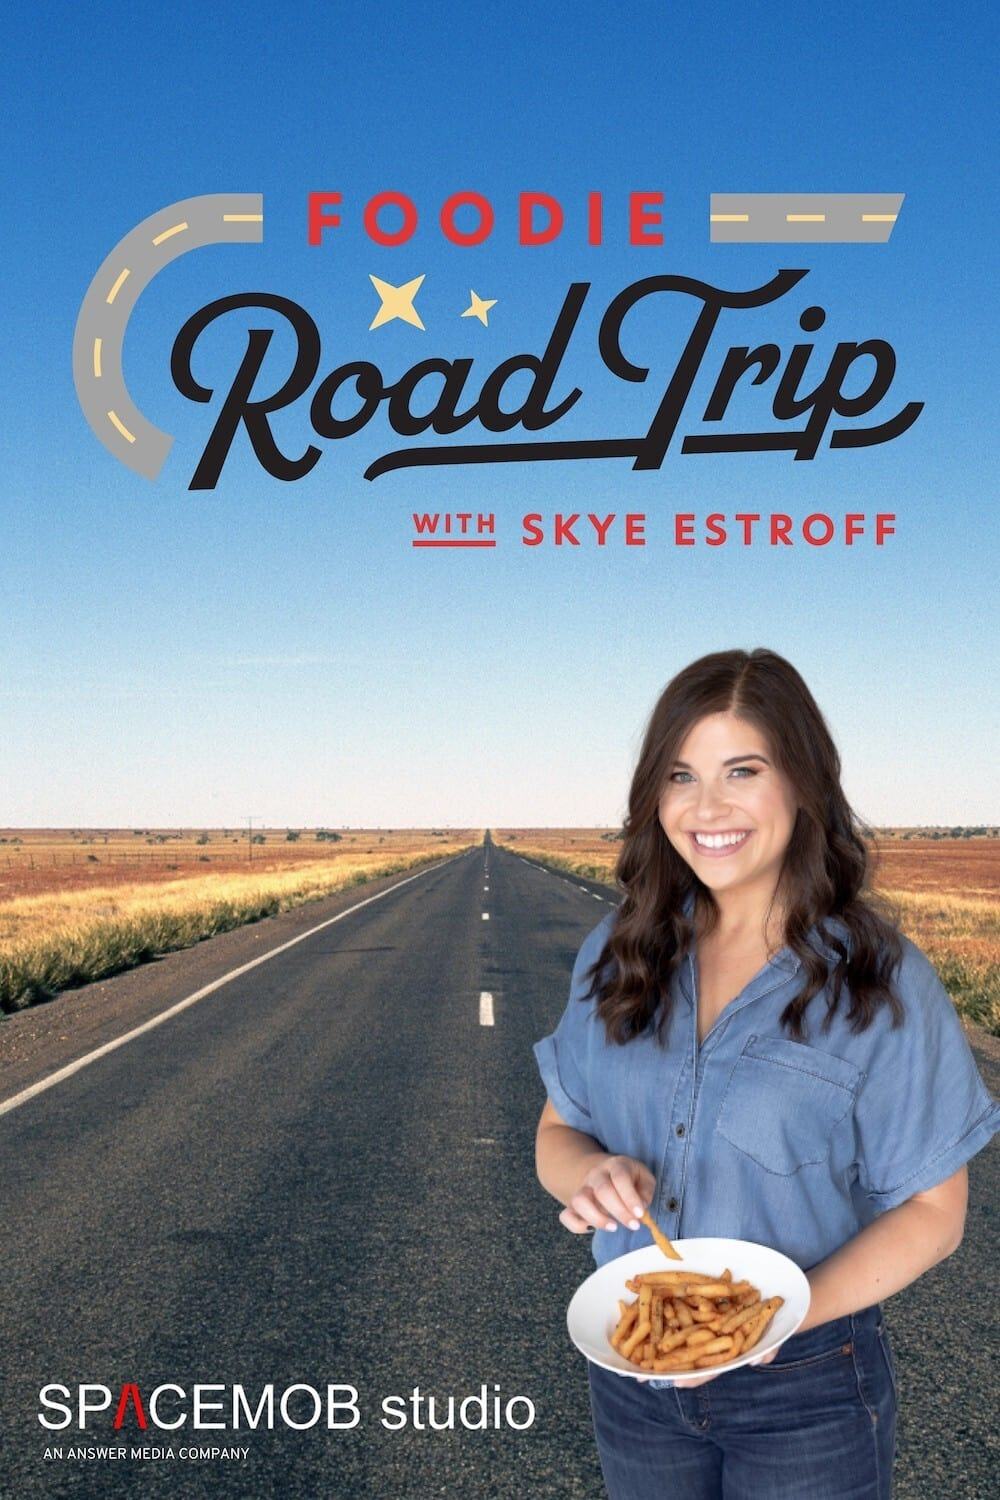 Foodie Road Trip TV Shows About King